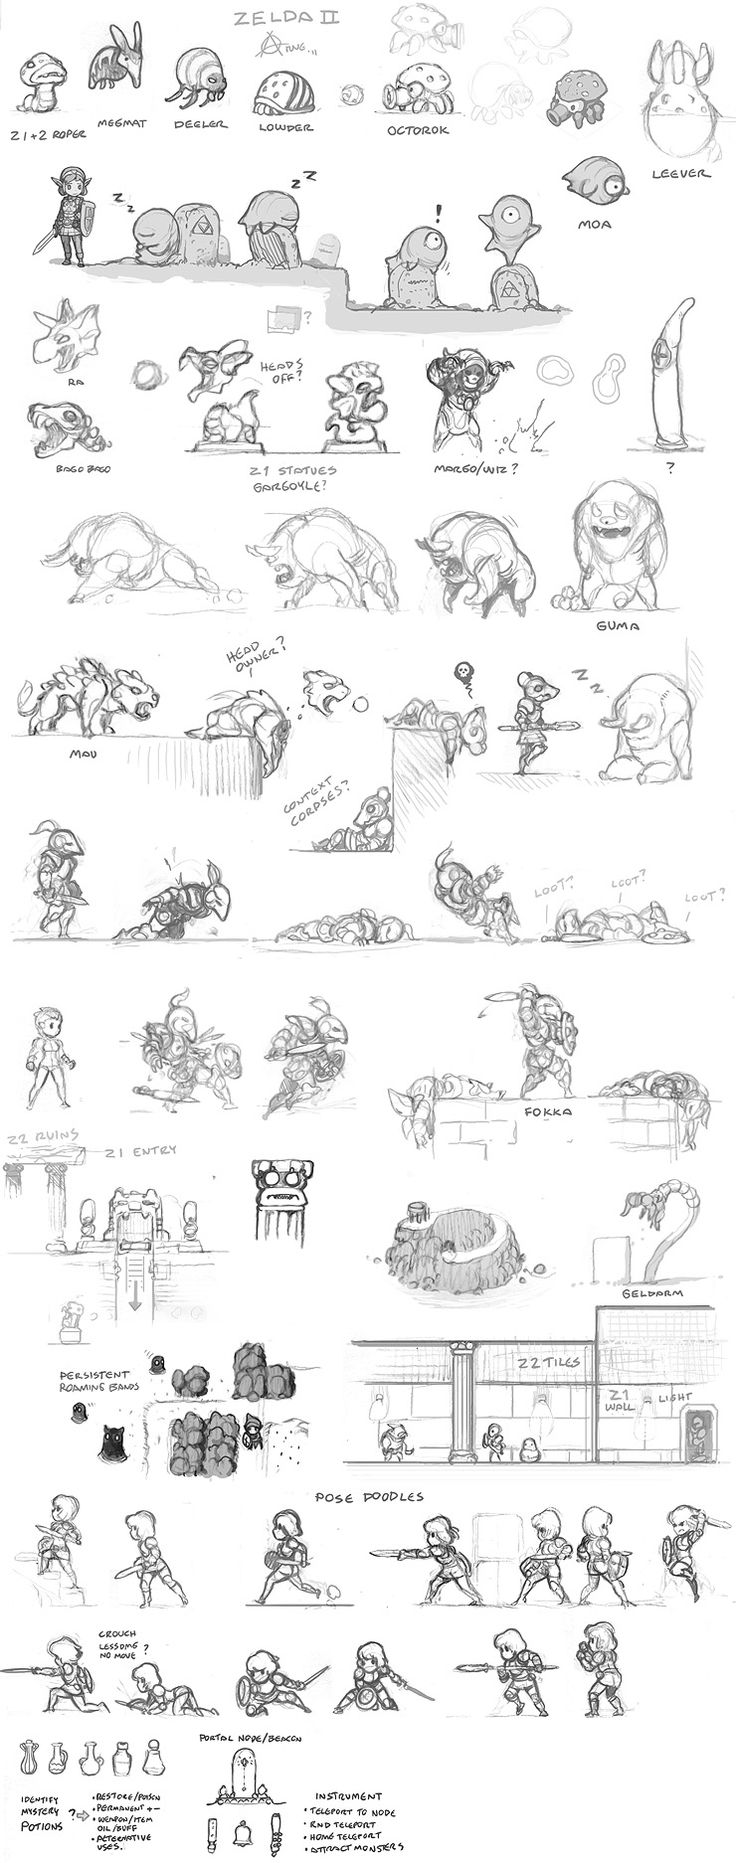 Best Character Animation Images On Pinterest Character Design - Character design document